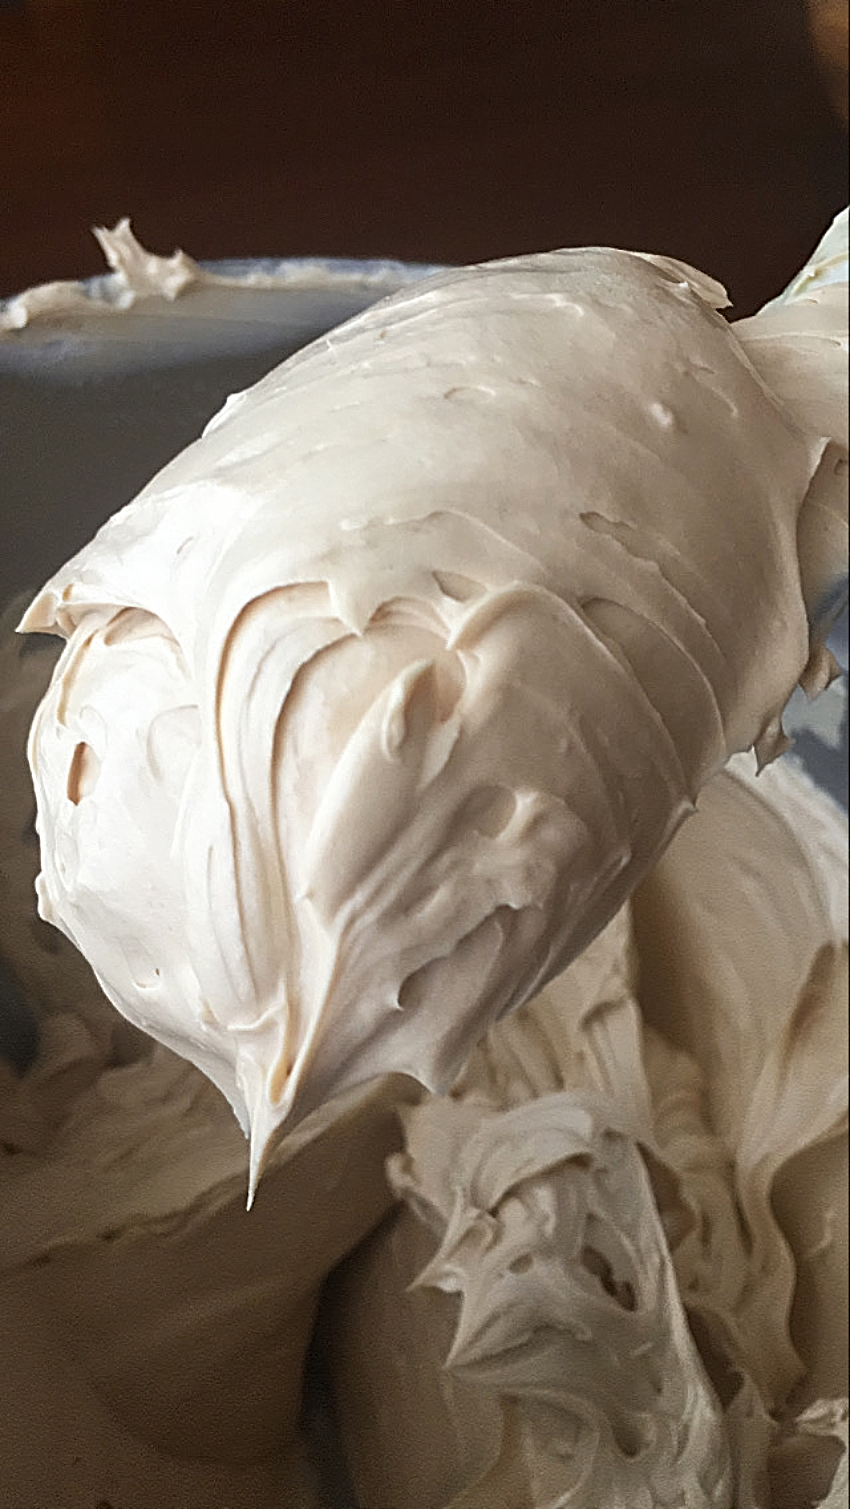 BUTTERCREAM-DE-MERENGUE-SUIZO-DE-CREMA-LOTUS